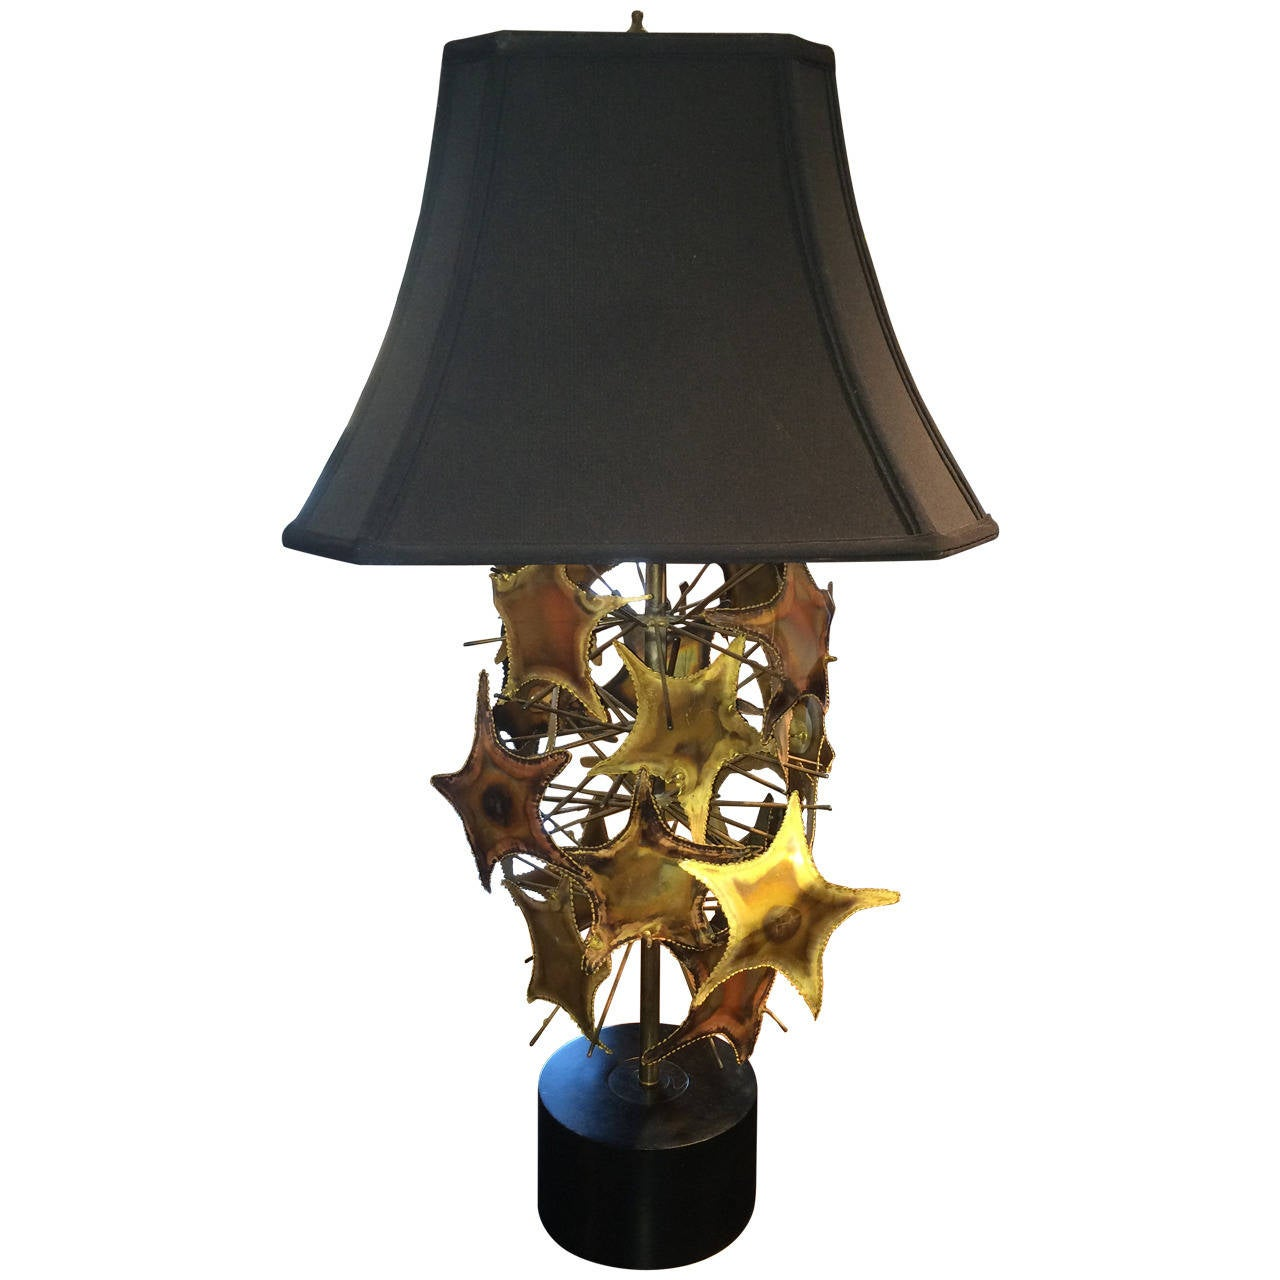 Brutalist Mid-Century Lamp in the Style of Jere